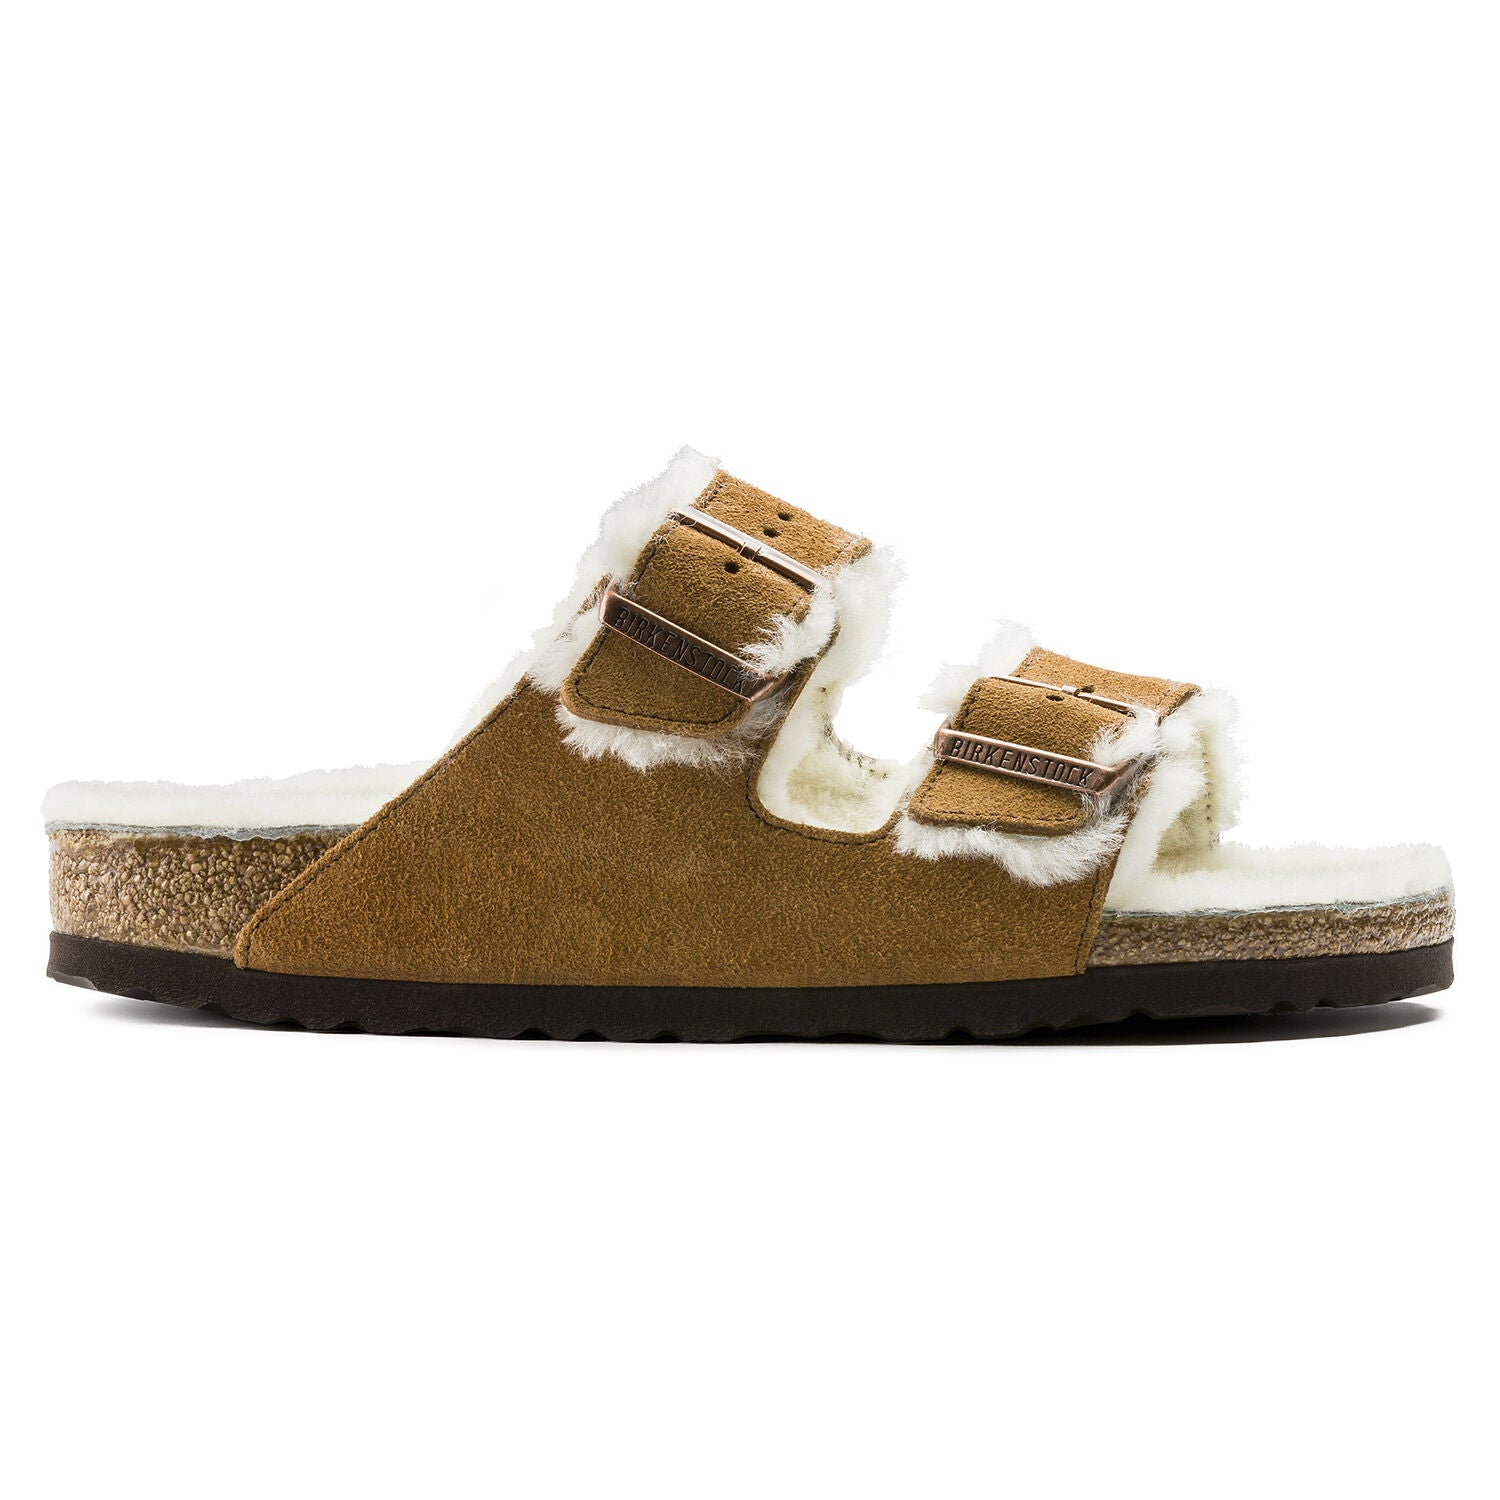 BIRKENSTOCK - ARIZONA SHEARLING IN MINK